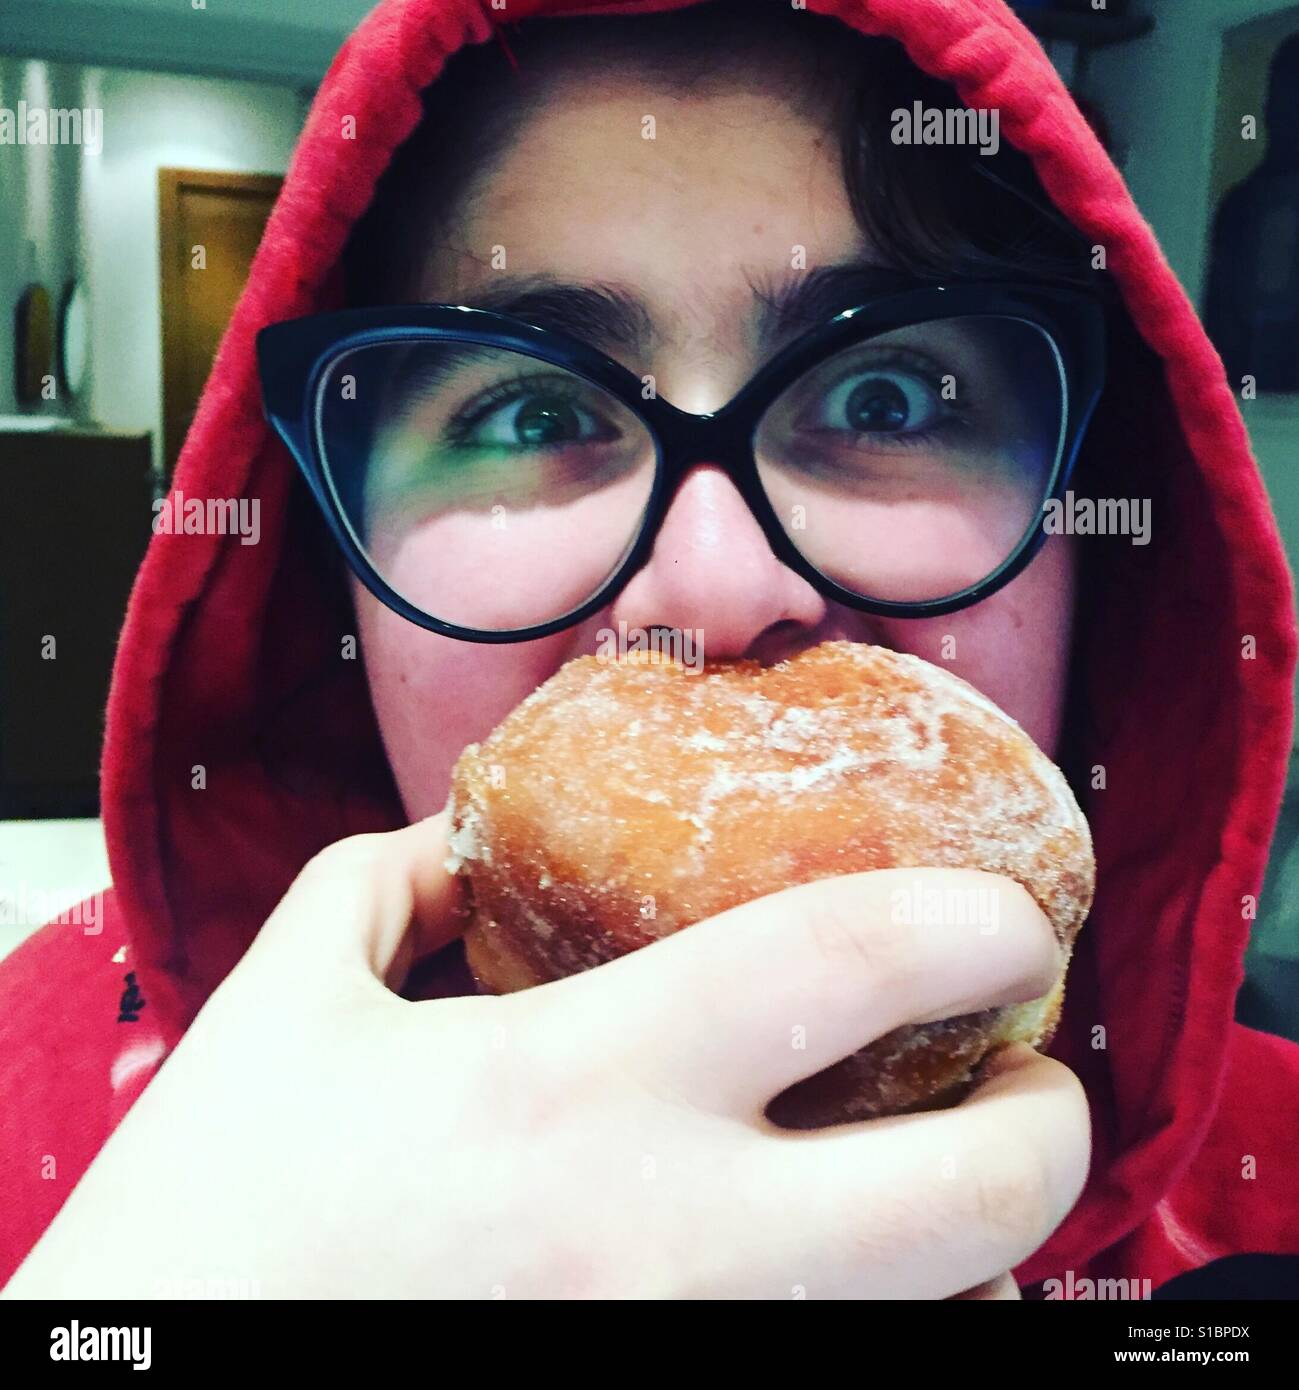 Girl with big glasses red hoodie and pink cheeks biting into a big jam doughnut - Stock Image